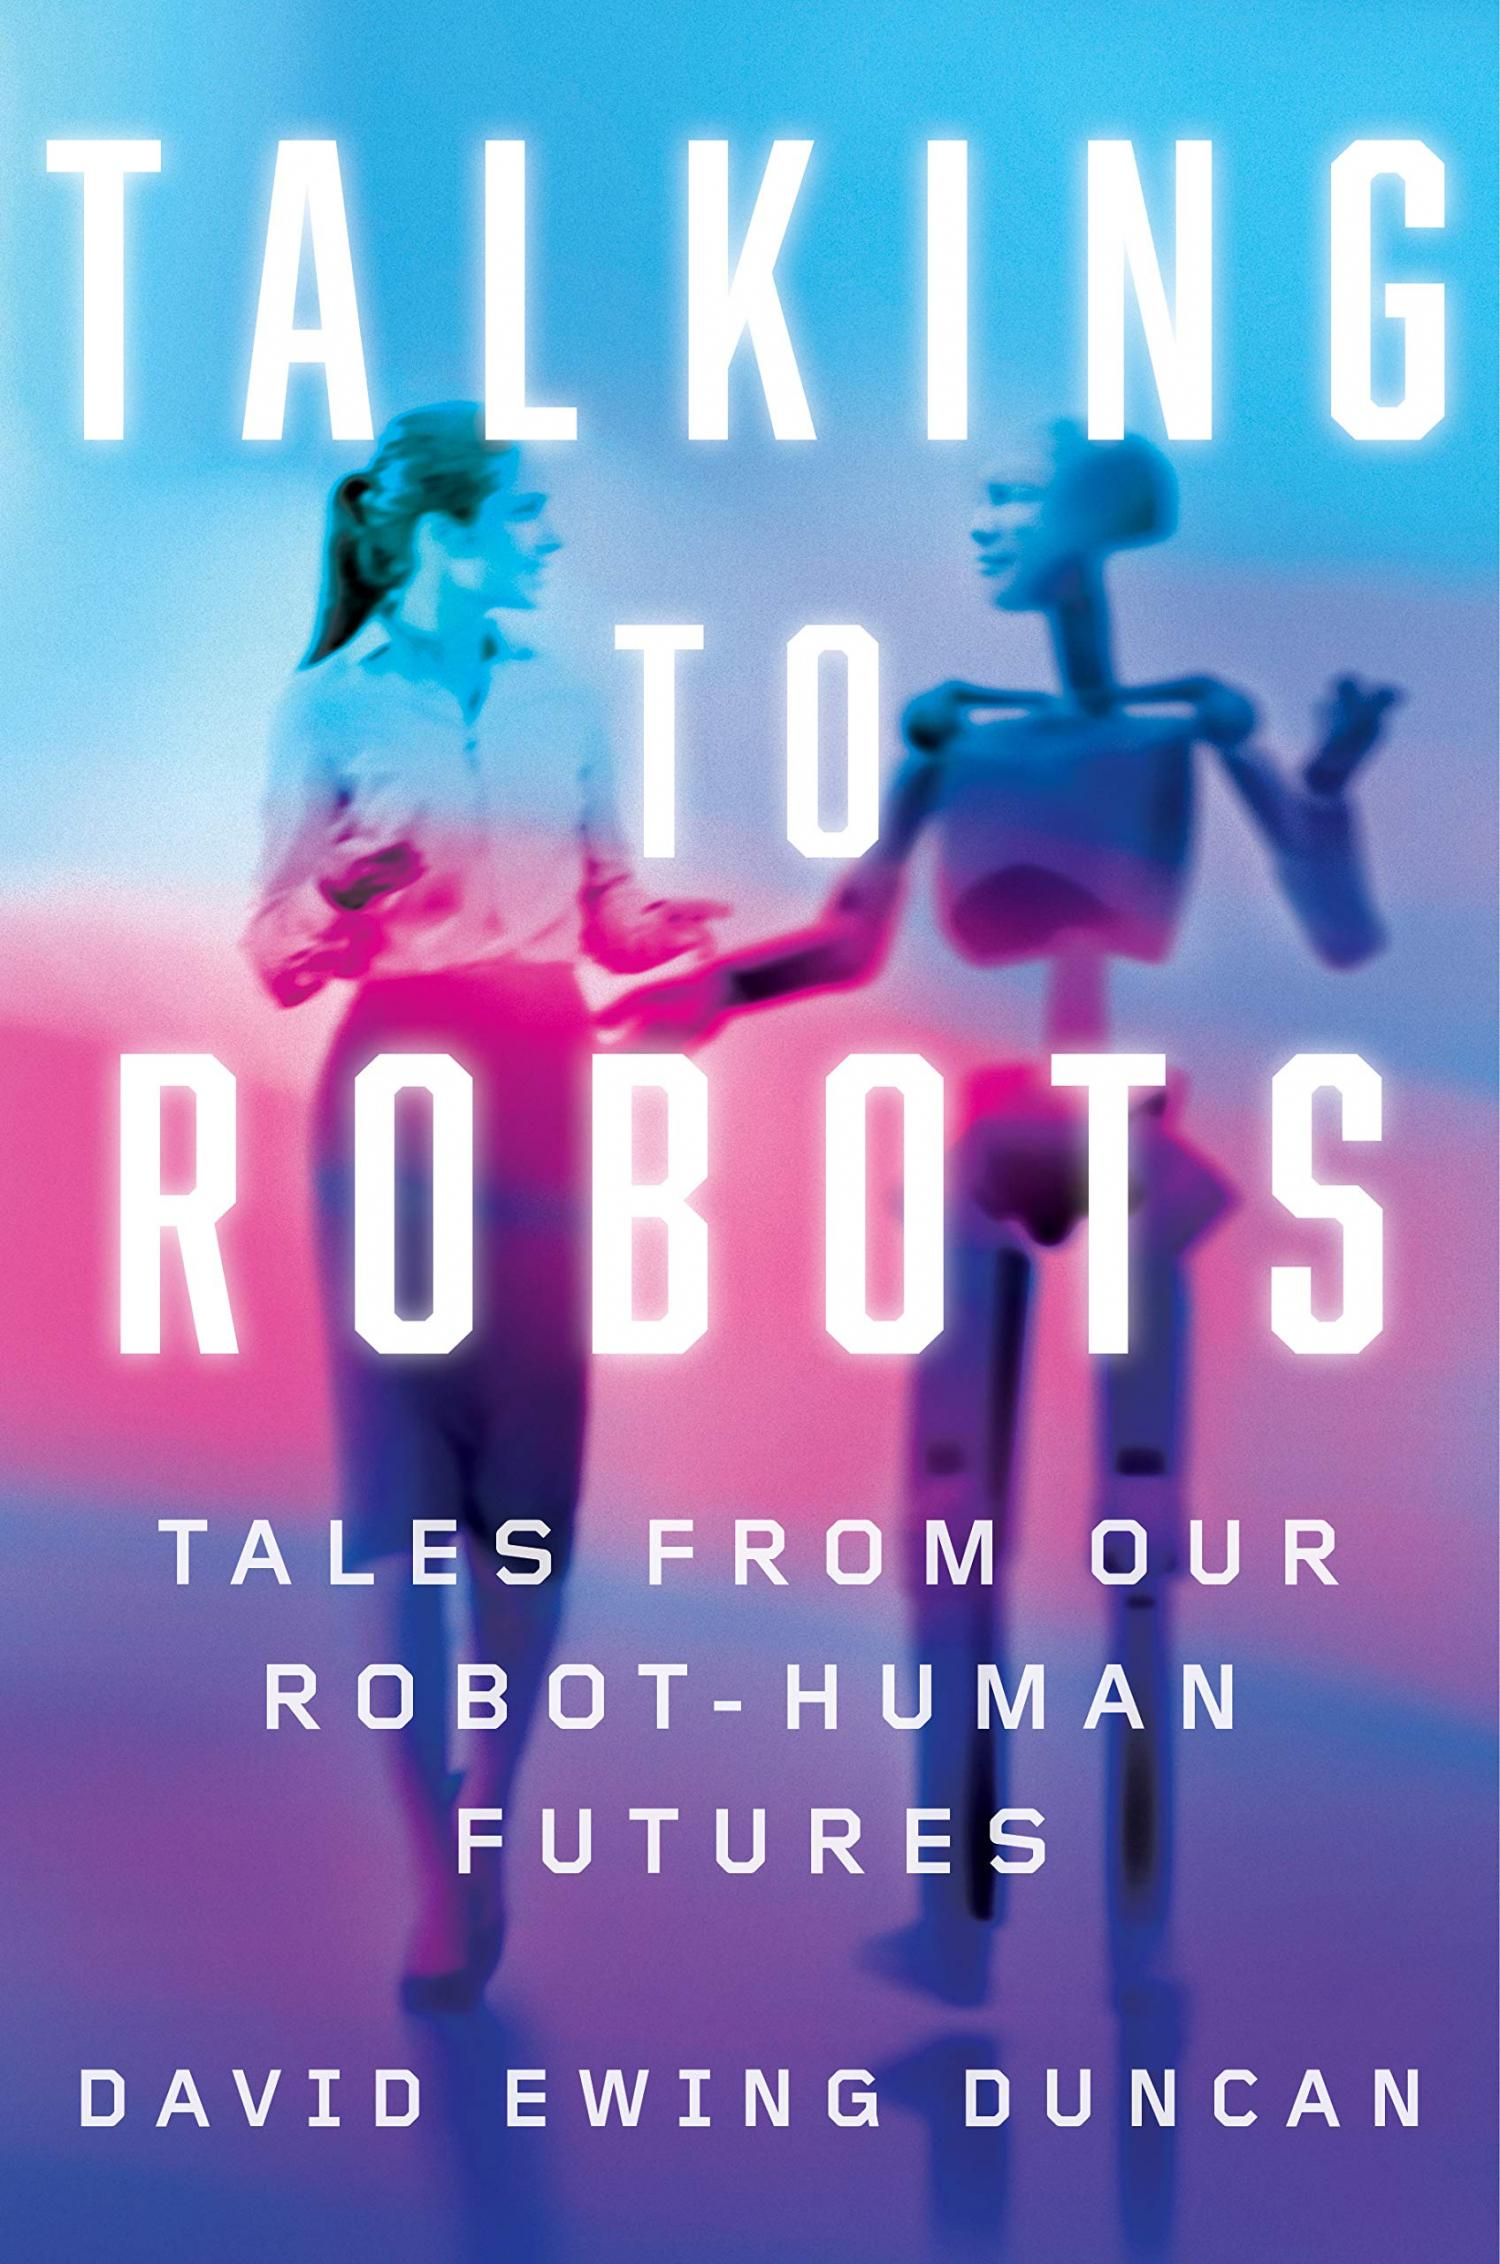 Talking to Robots: Tales from Our Human Robot Futures